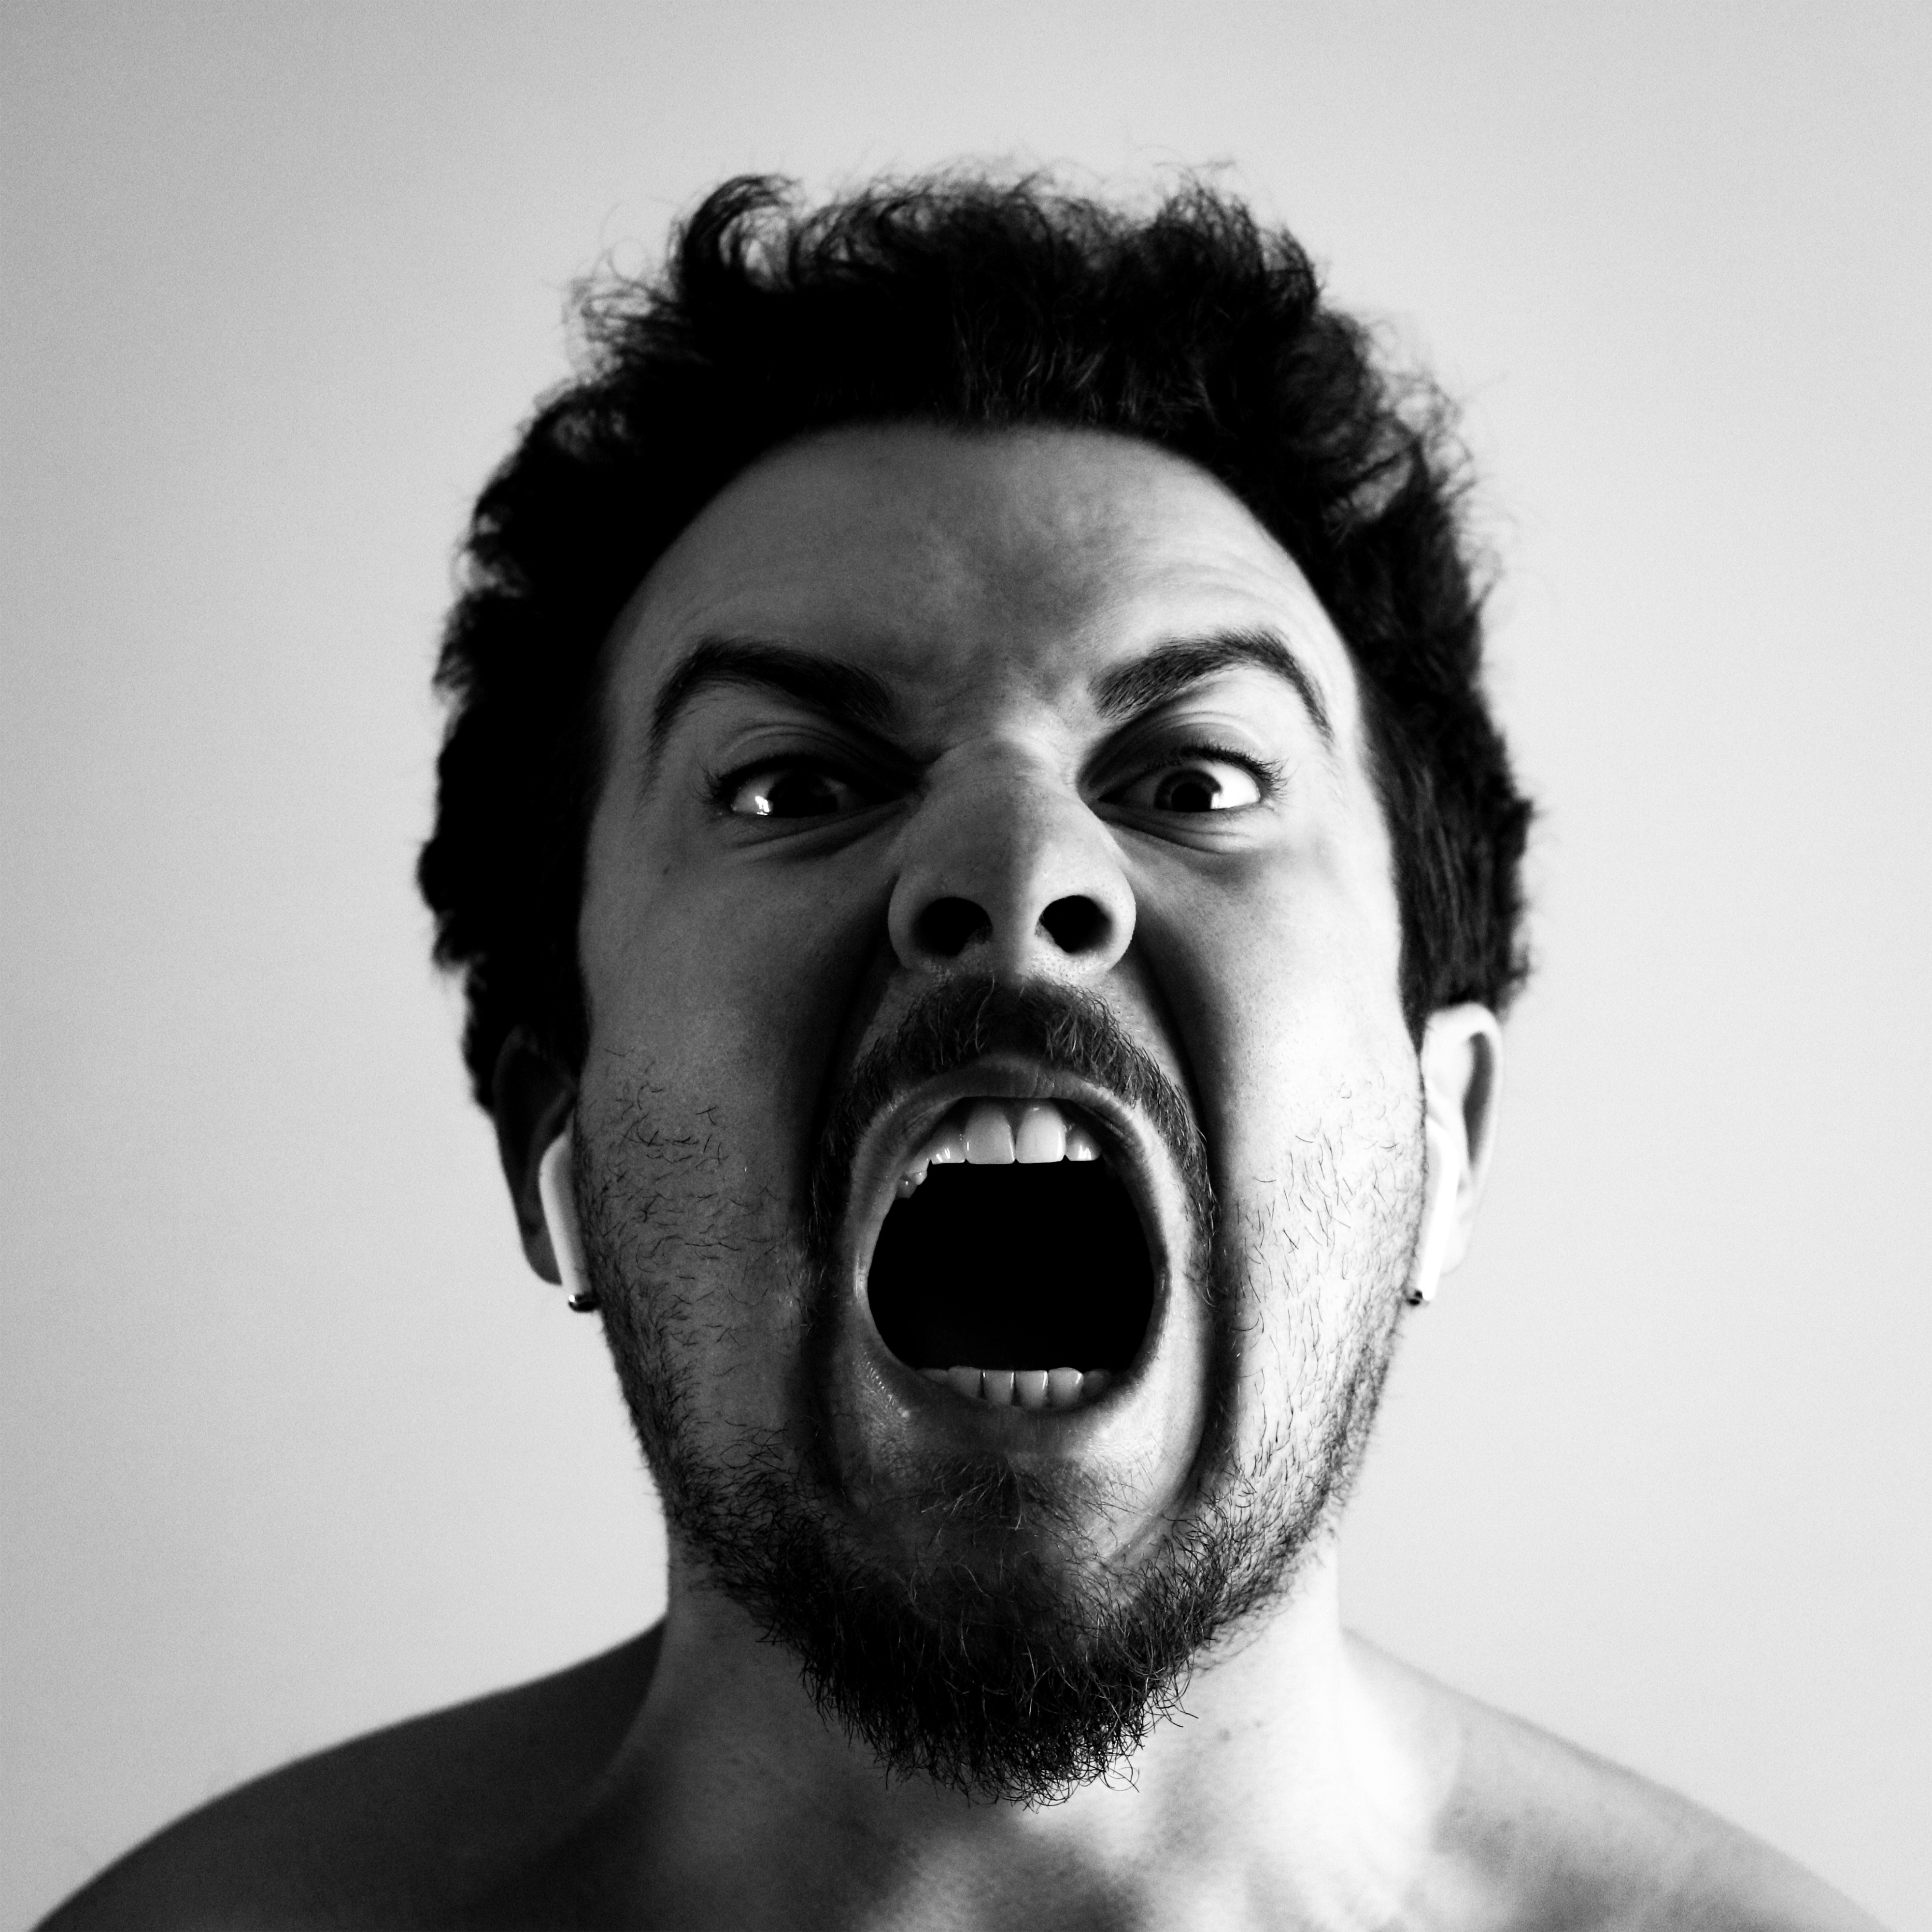 A man screaming in rage